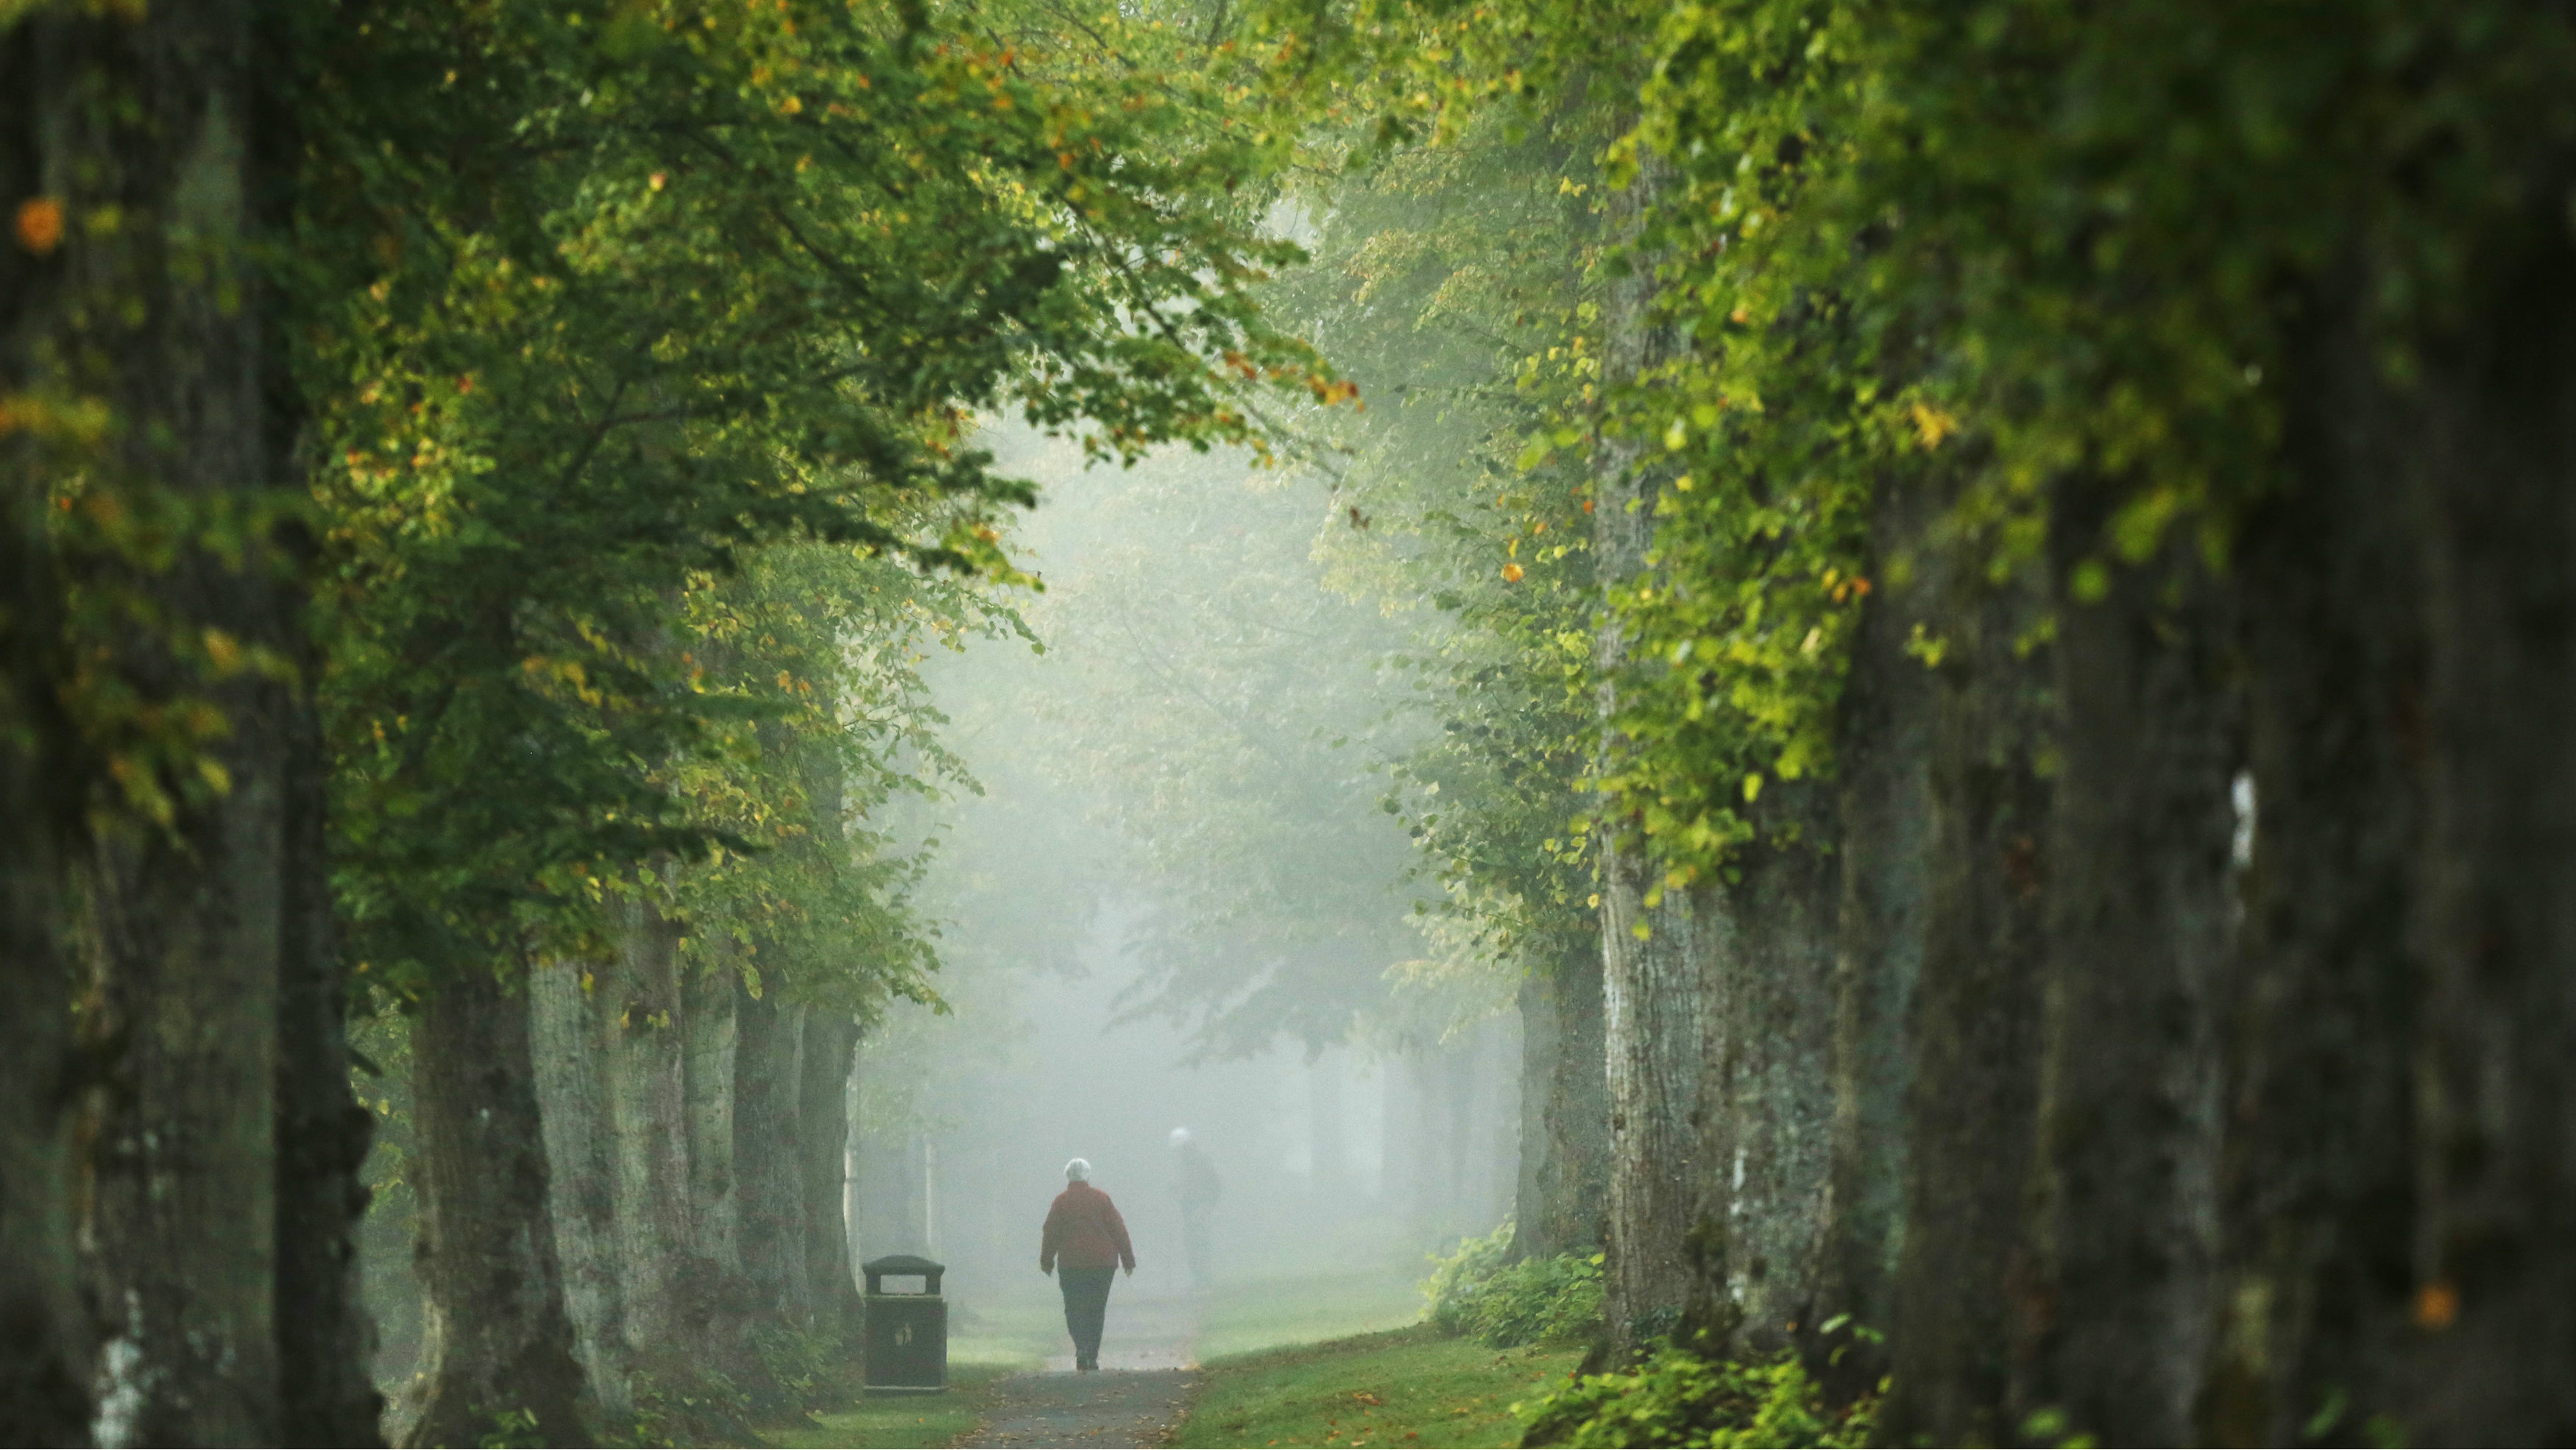 A woman walks through autumn mist at Arundel in Southern England October 7, 2013. REUTERS/Luke MacGregor (BRITAIN - Tags: ENVIRONMENT TPX IMAGES OF THE DAY)